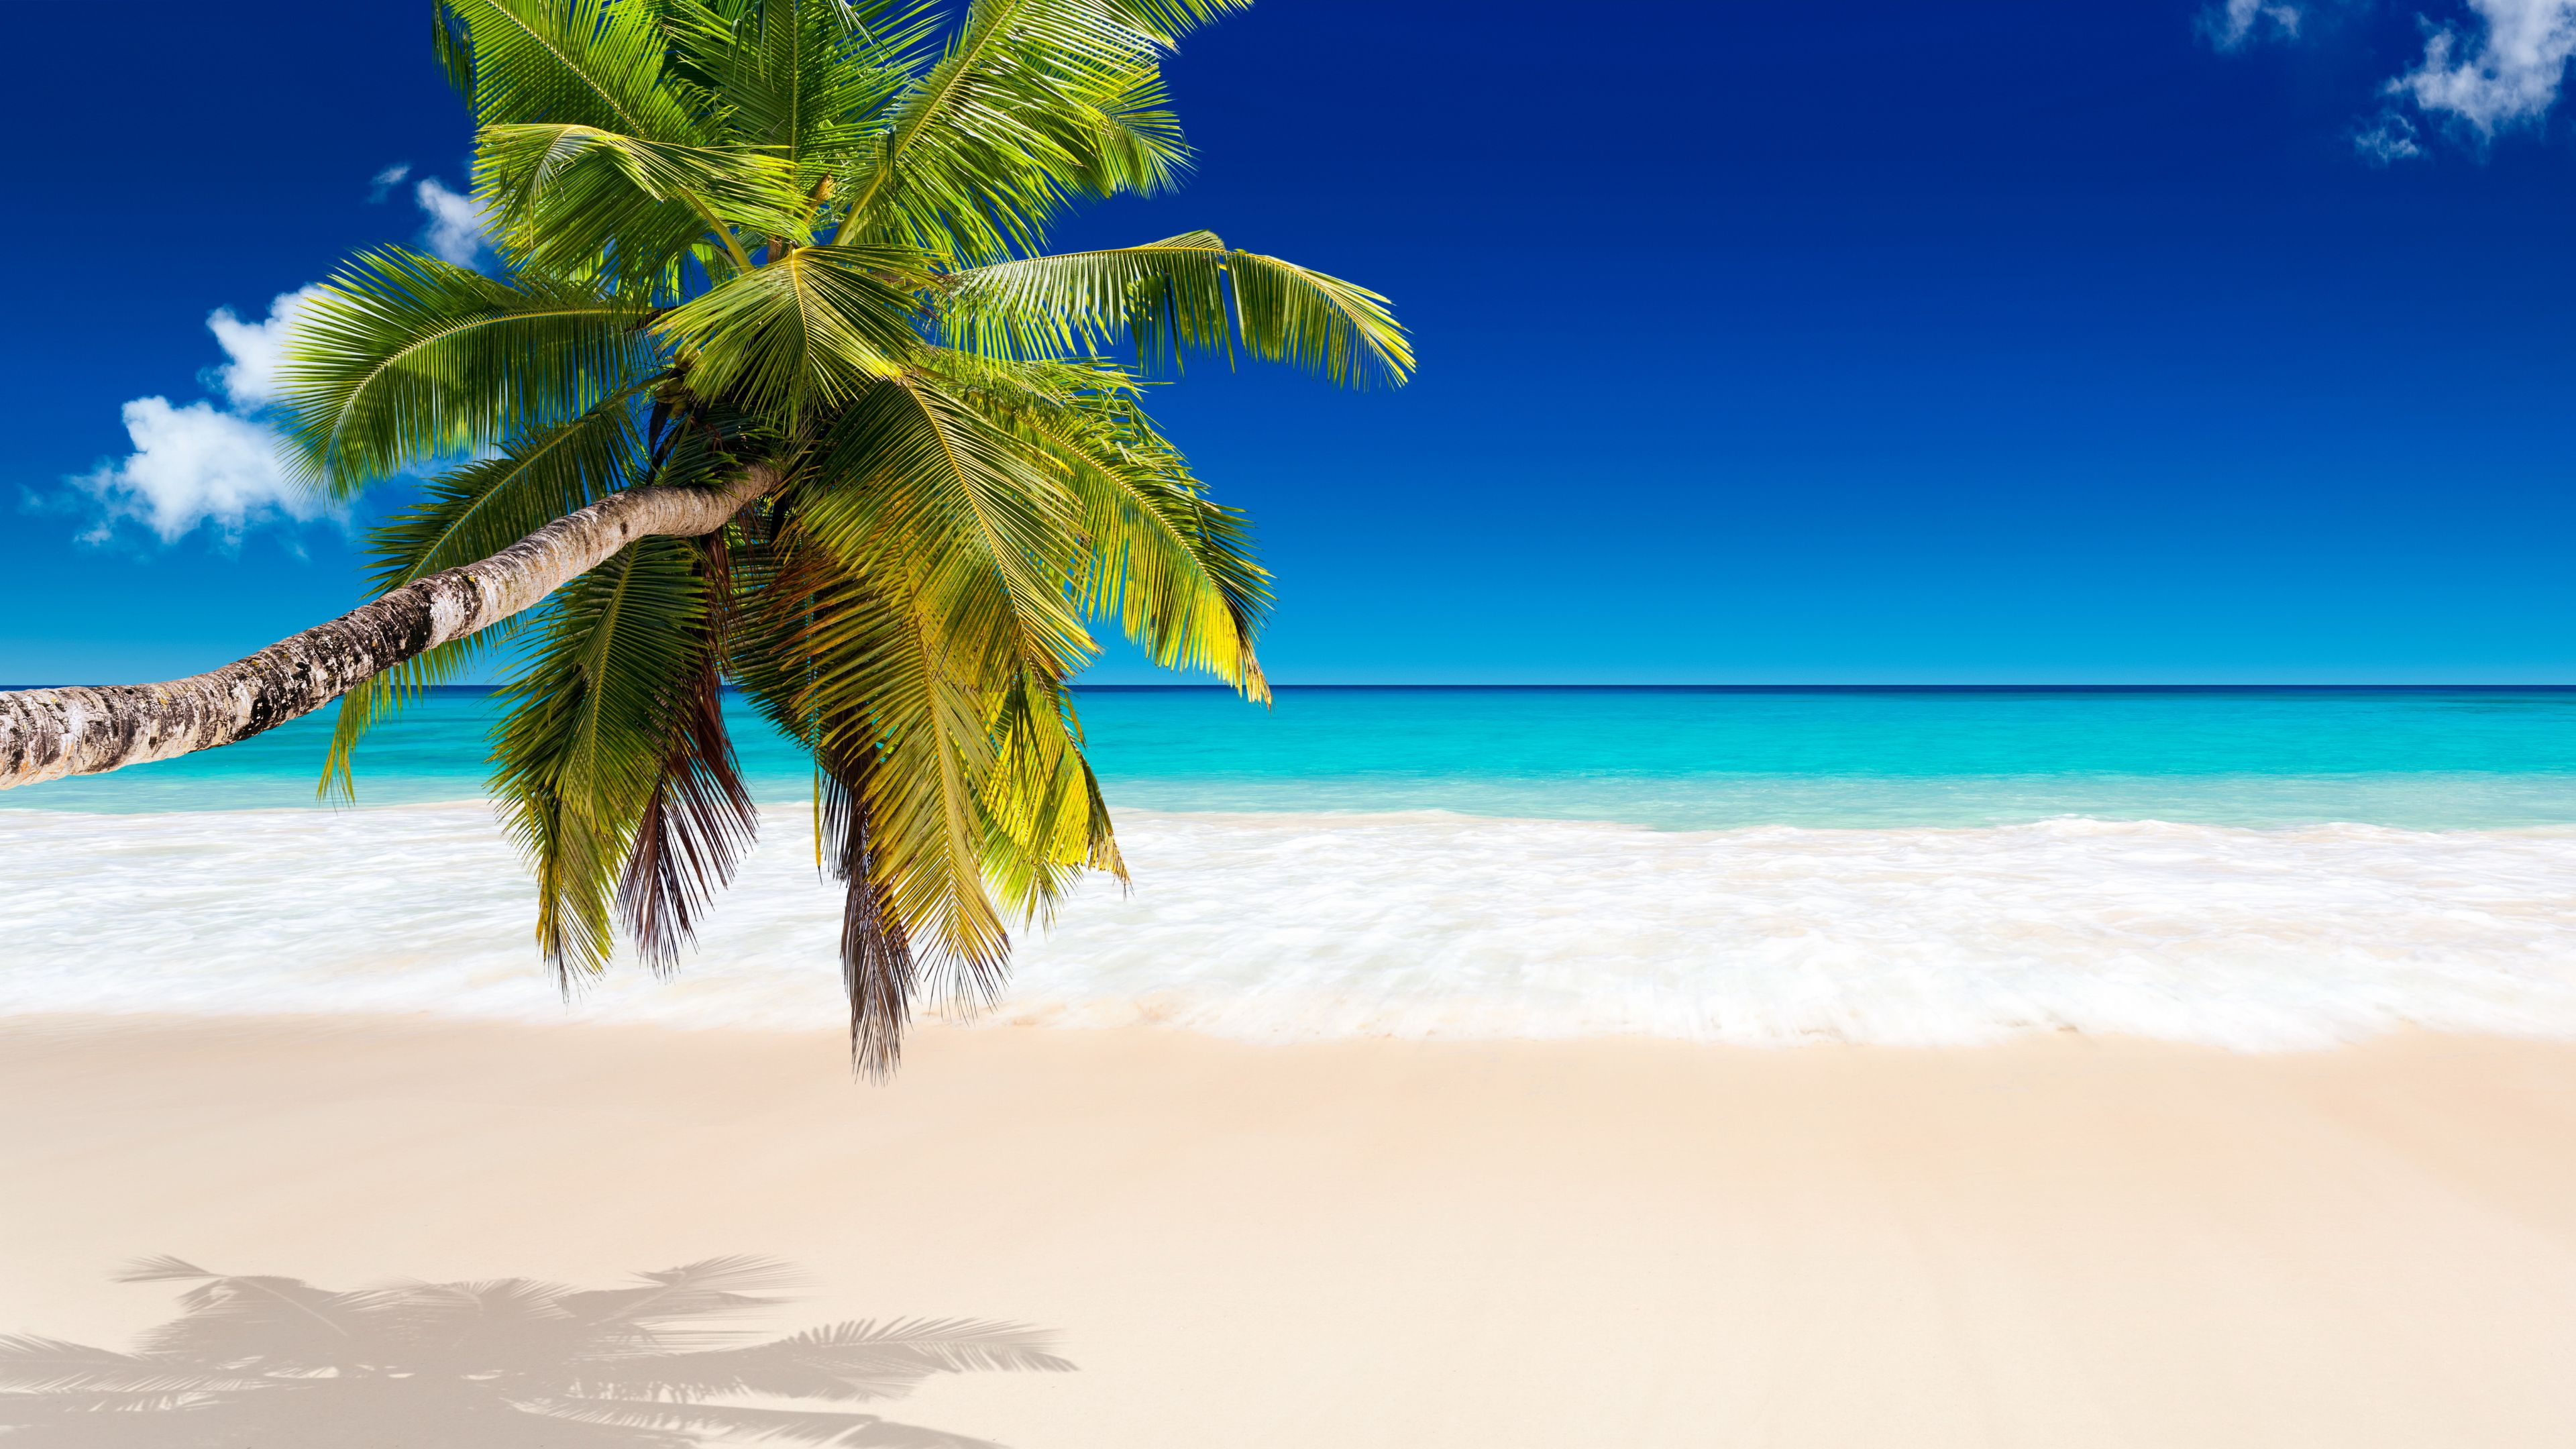 Caribbean Backgrounds 3840x2160